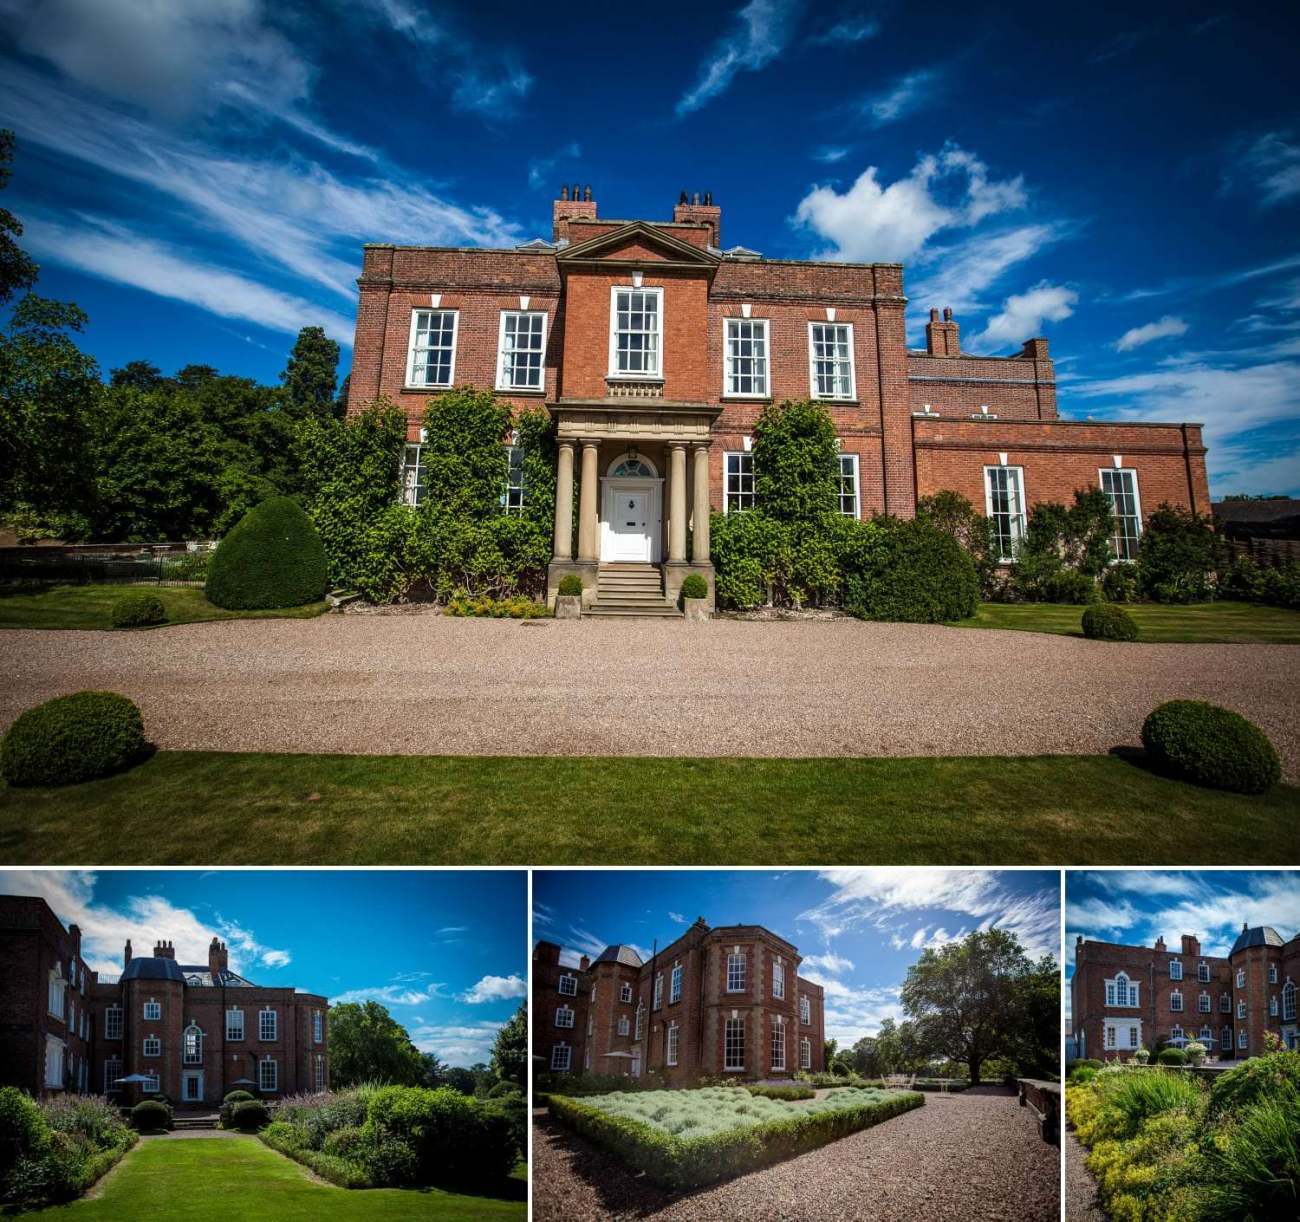 Wedding Photography of the building at Iscoyd Park, Whitchurch